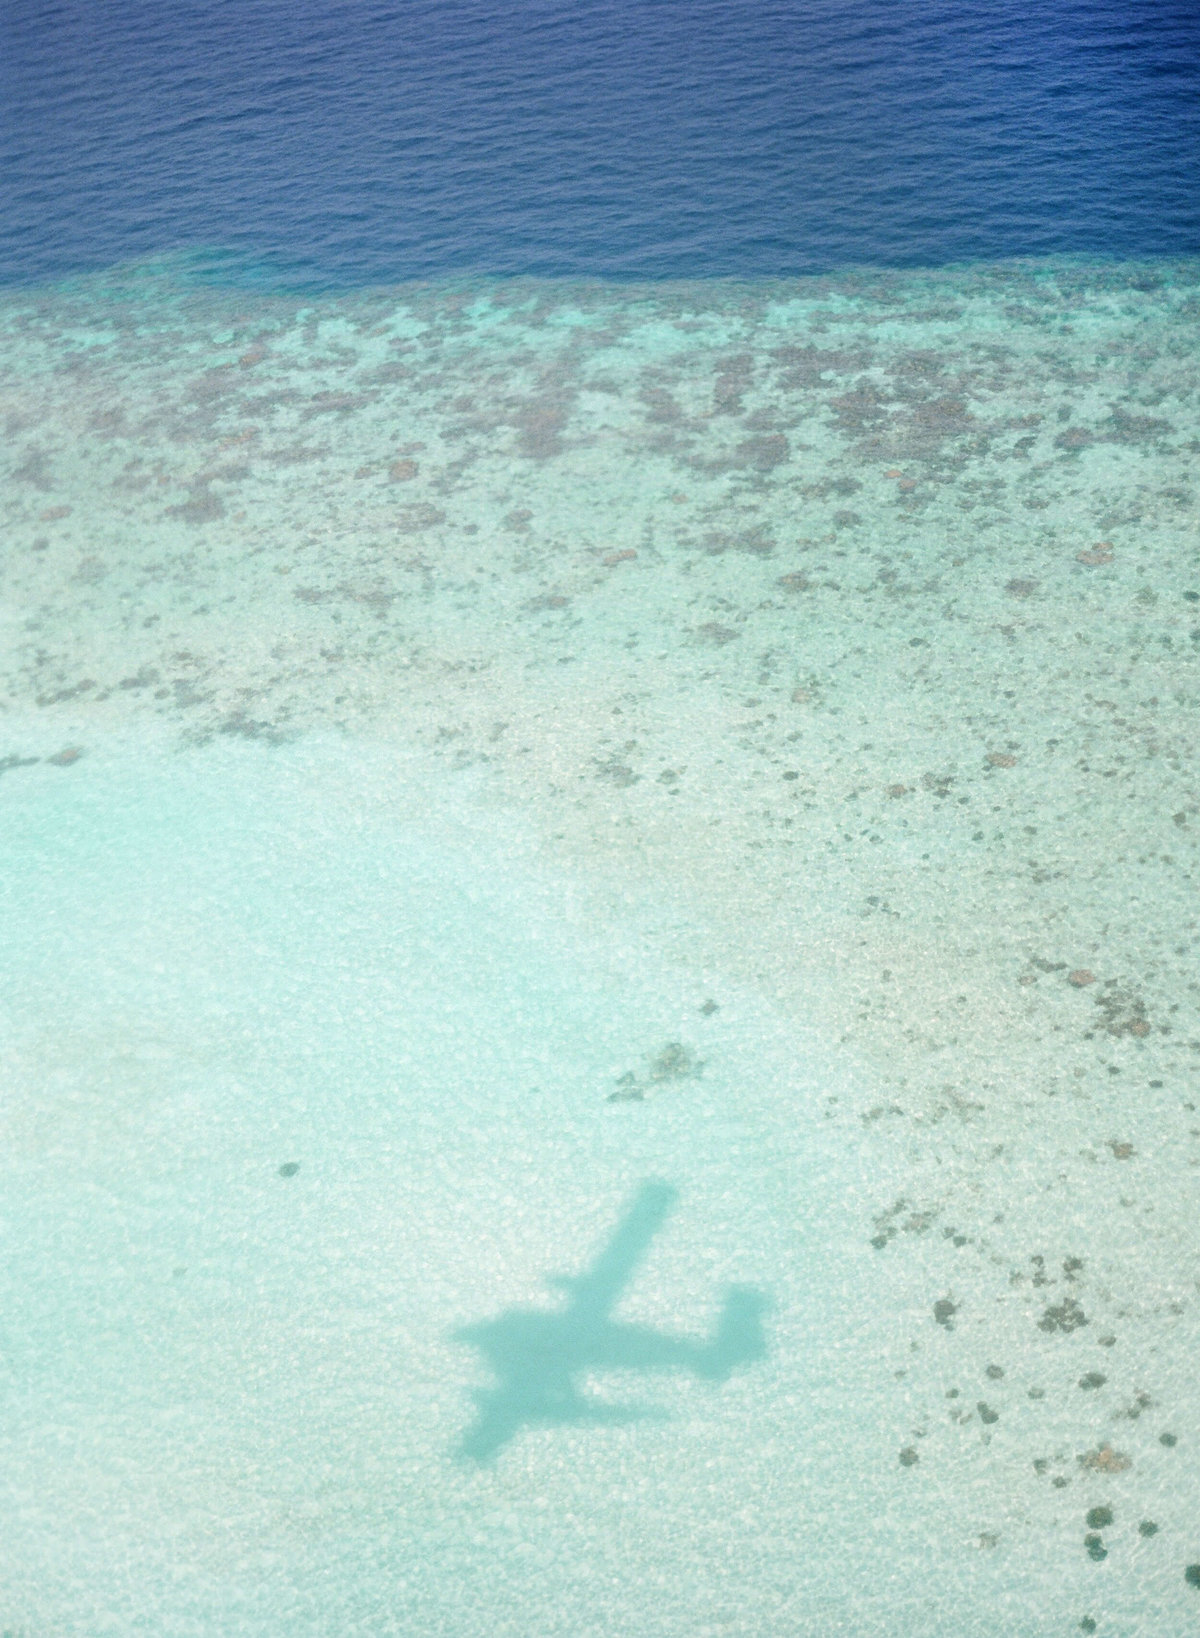 8-KTMerry-airplane-shadow-destinationwedding-Maldives